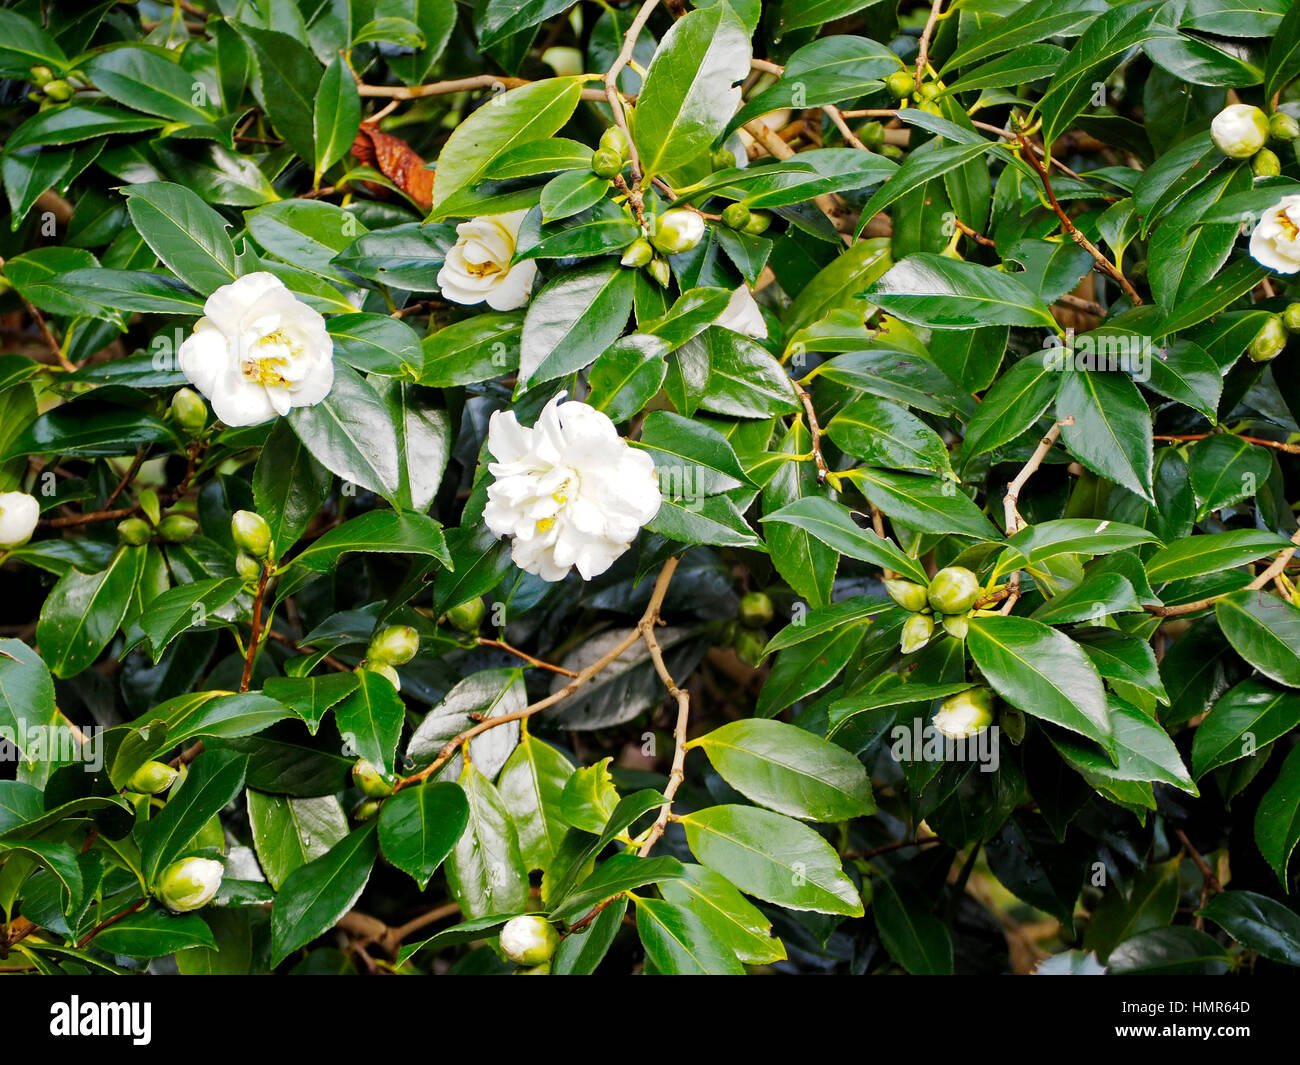 Camellia white empress provides winter colour the flowers stock camellia white empress provides winter colour the flowers contrasting strongly with the dark green waxy leaves mightylinksfo